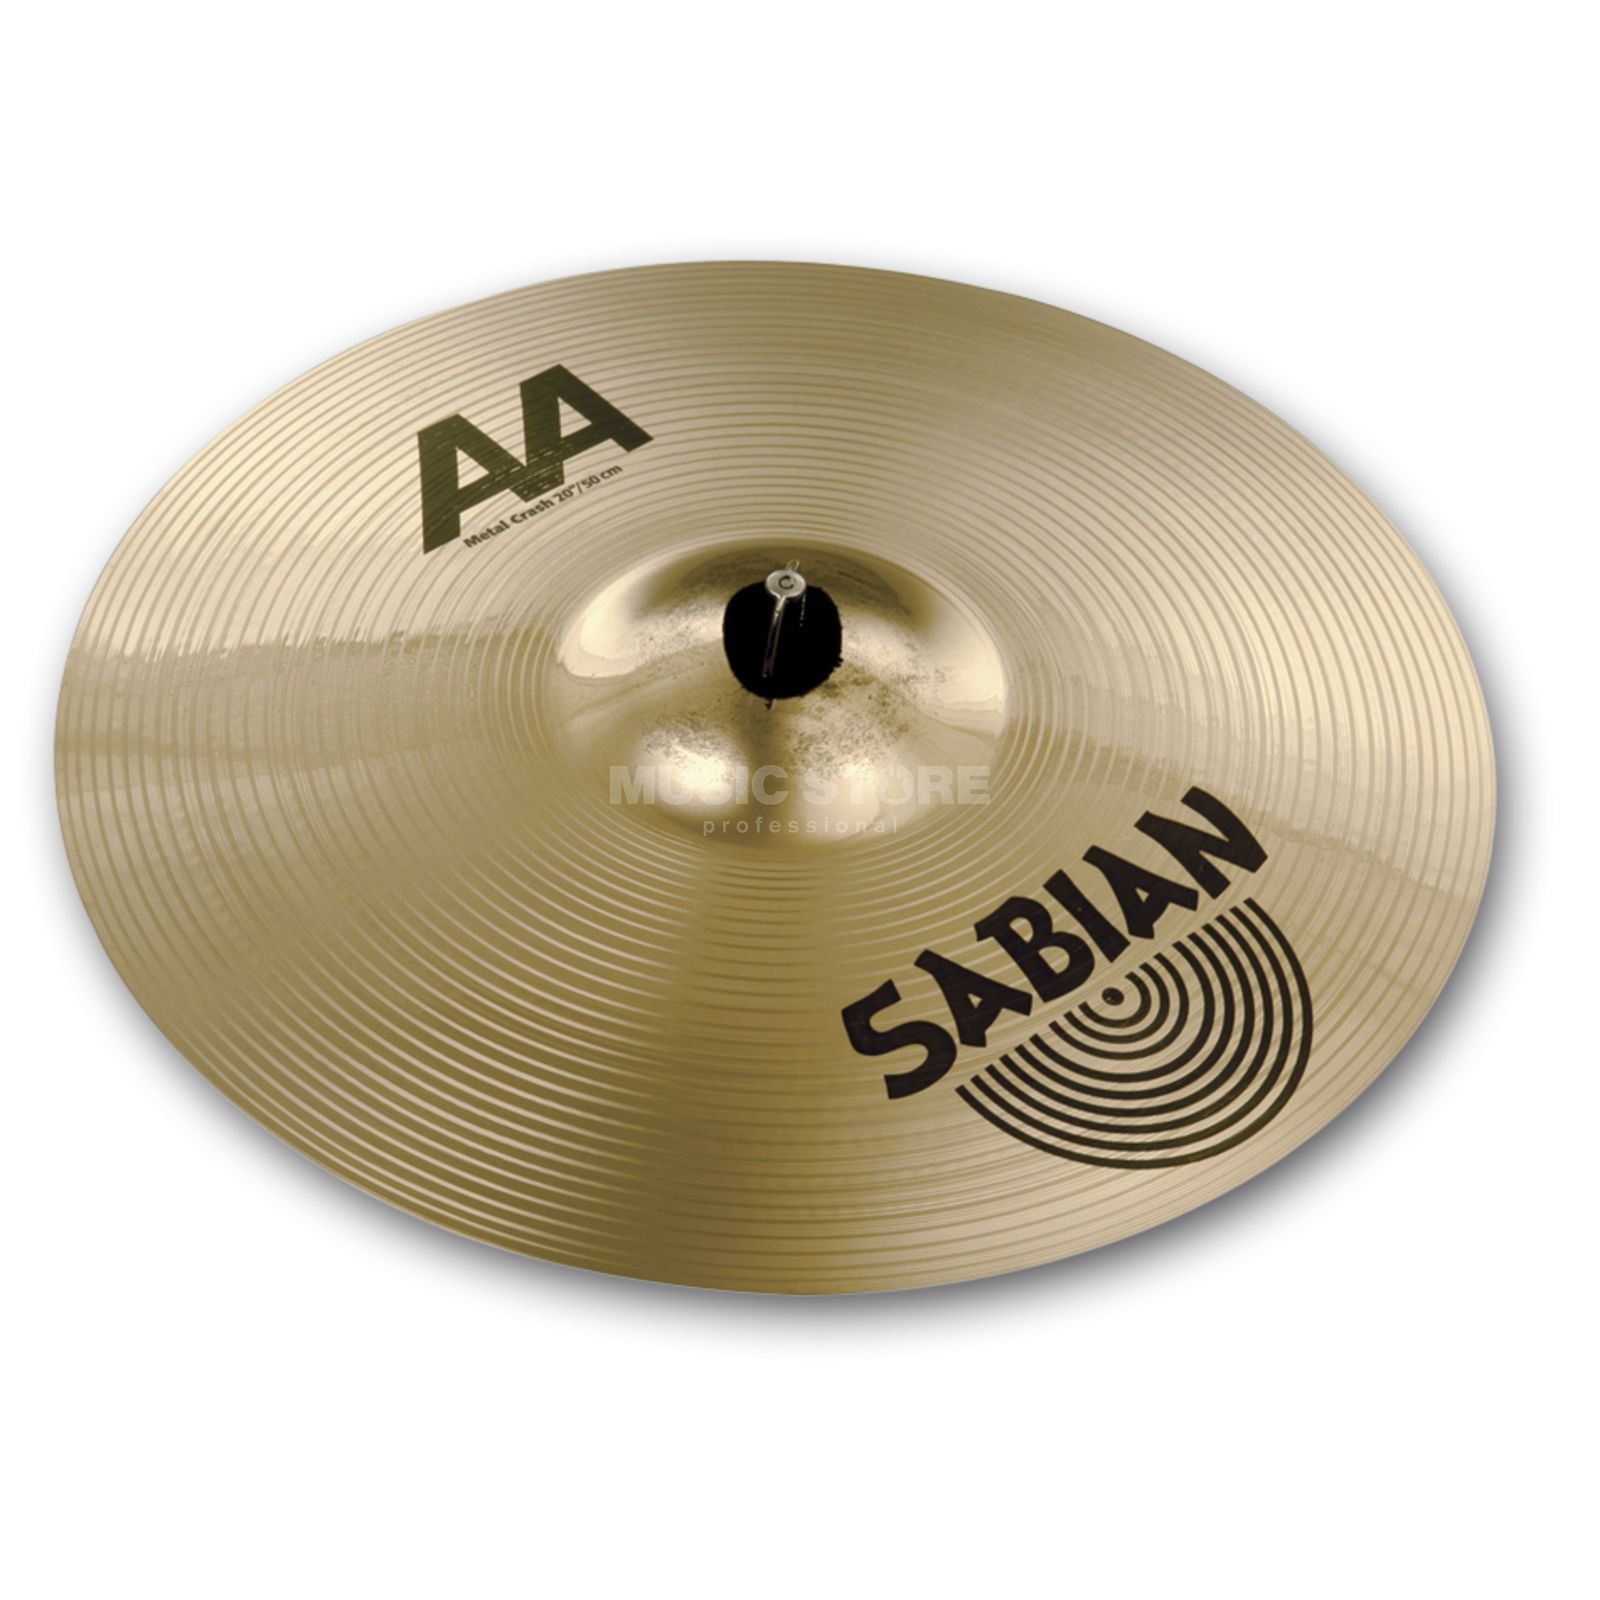 "Sabian AA Metal Crash 20"" Brilliant Finish Produktbillede"